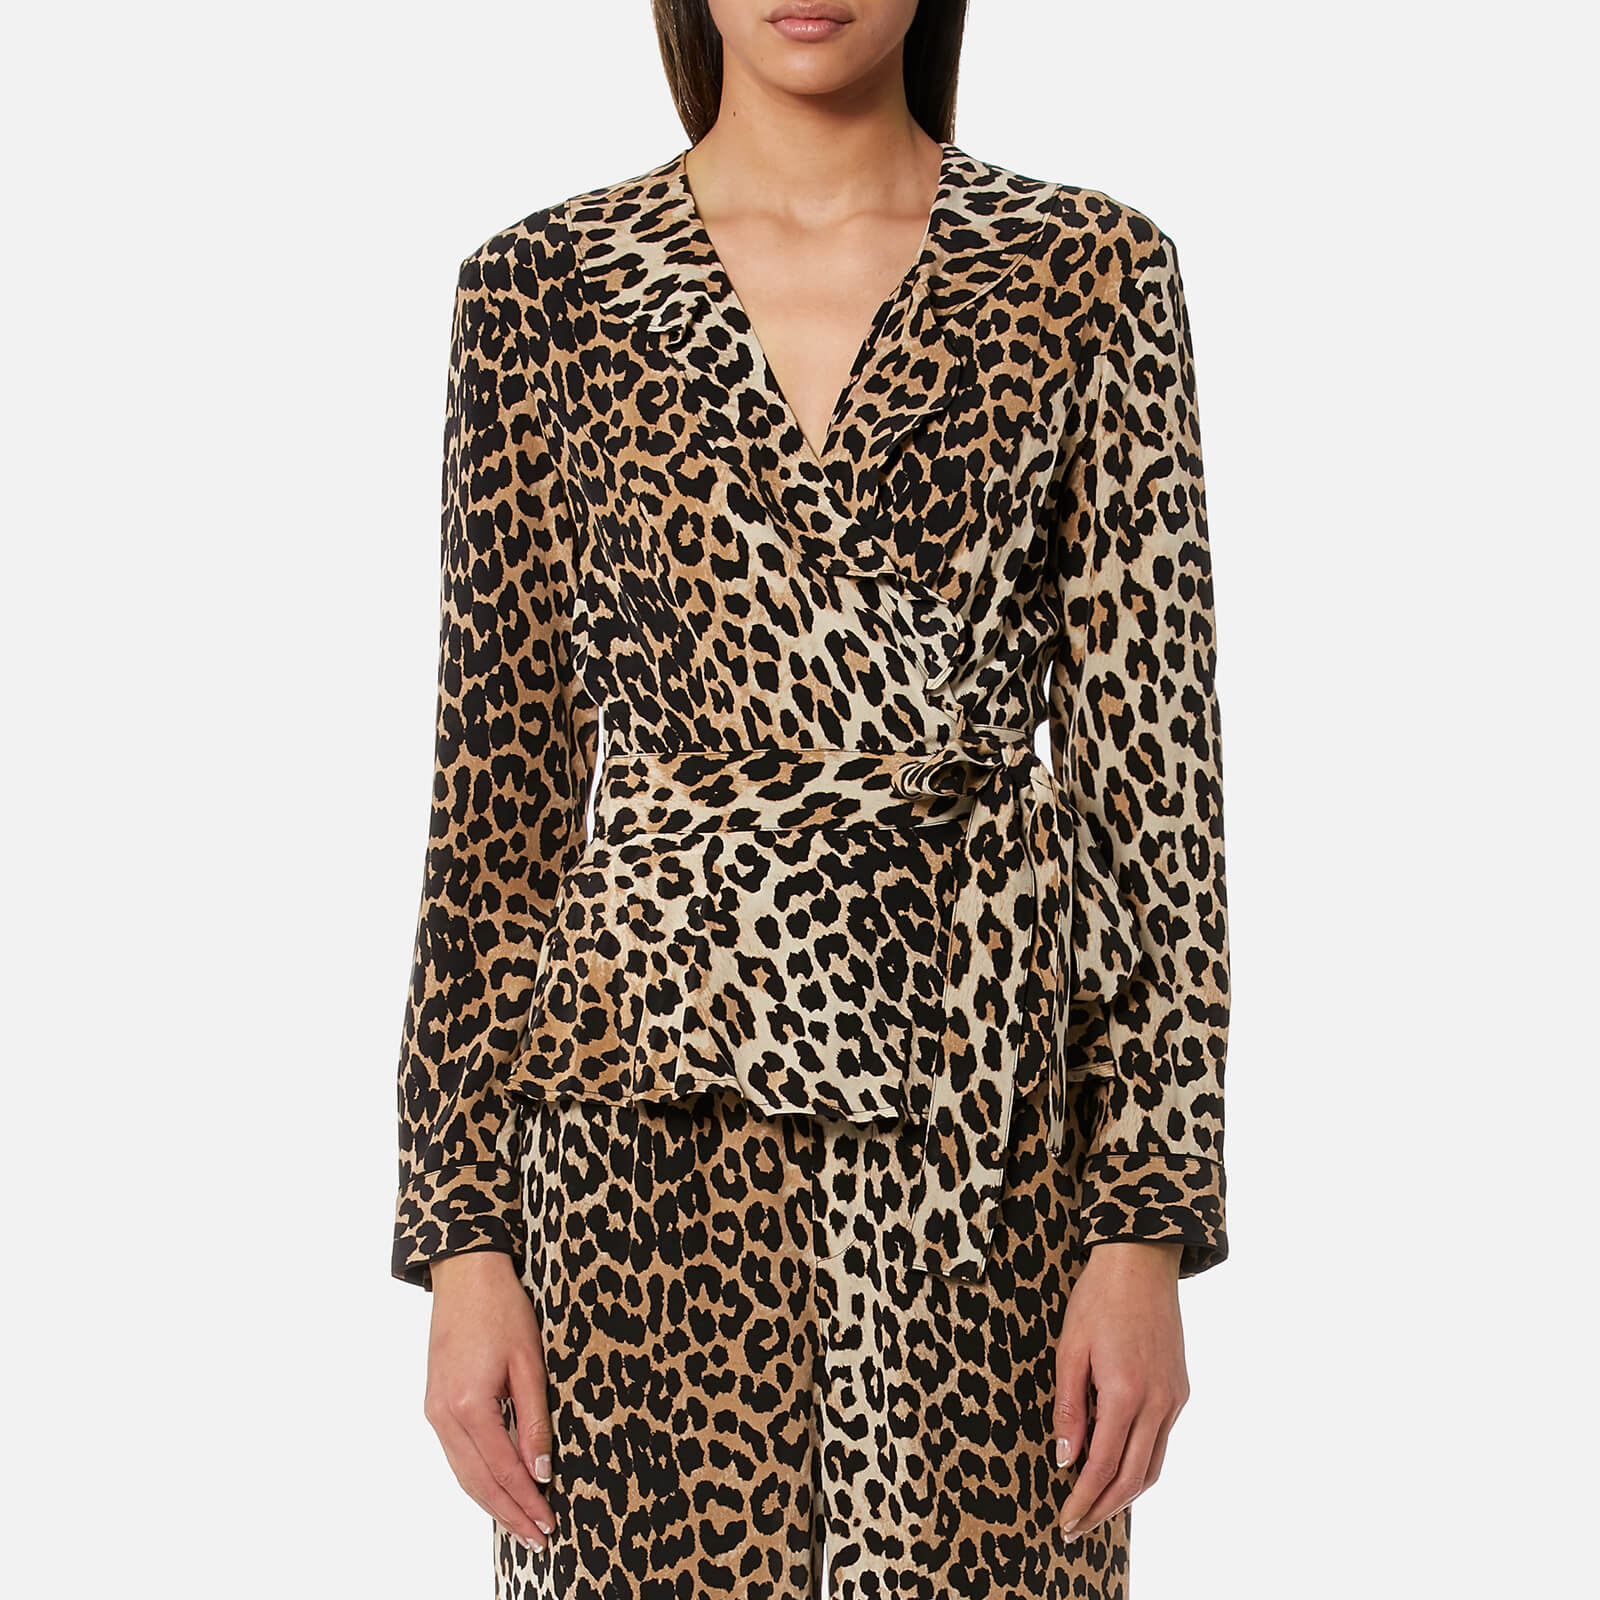 8163a0f530e Ganni Women s Fayette Silk Top - Leopard - Free UK Delivery over £50